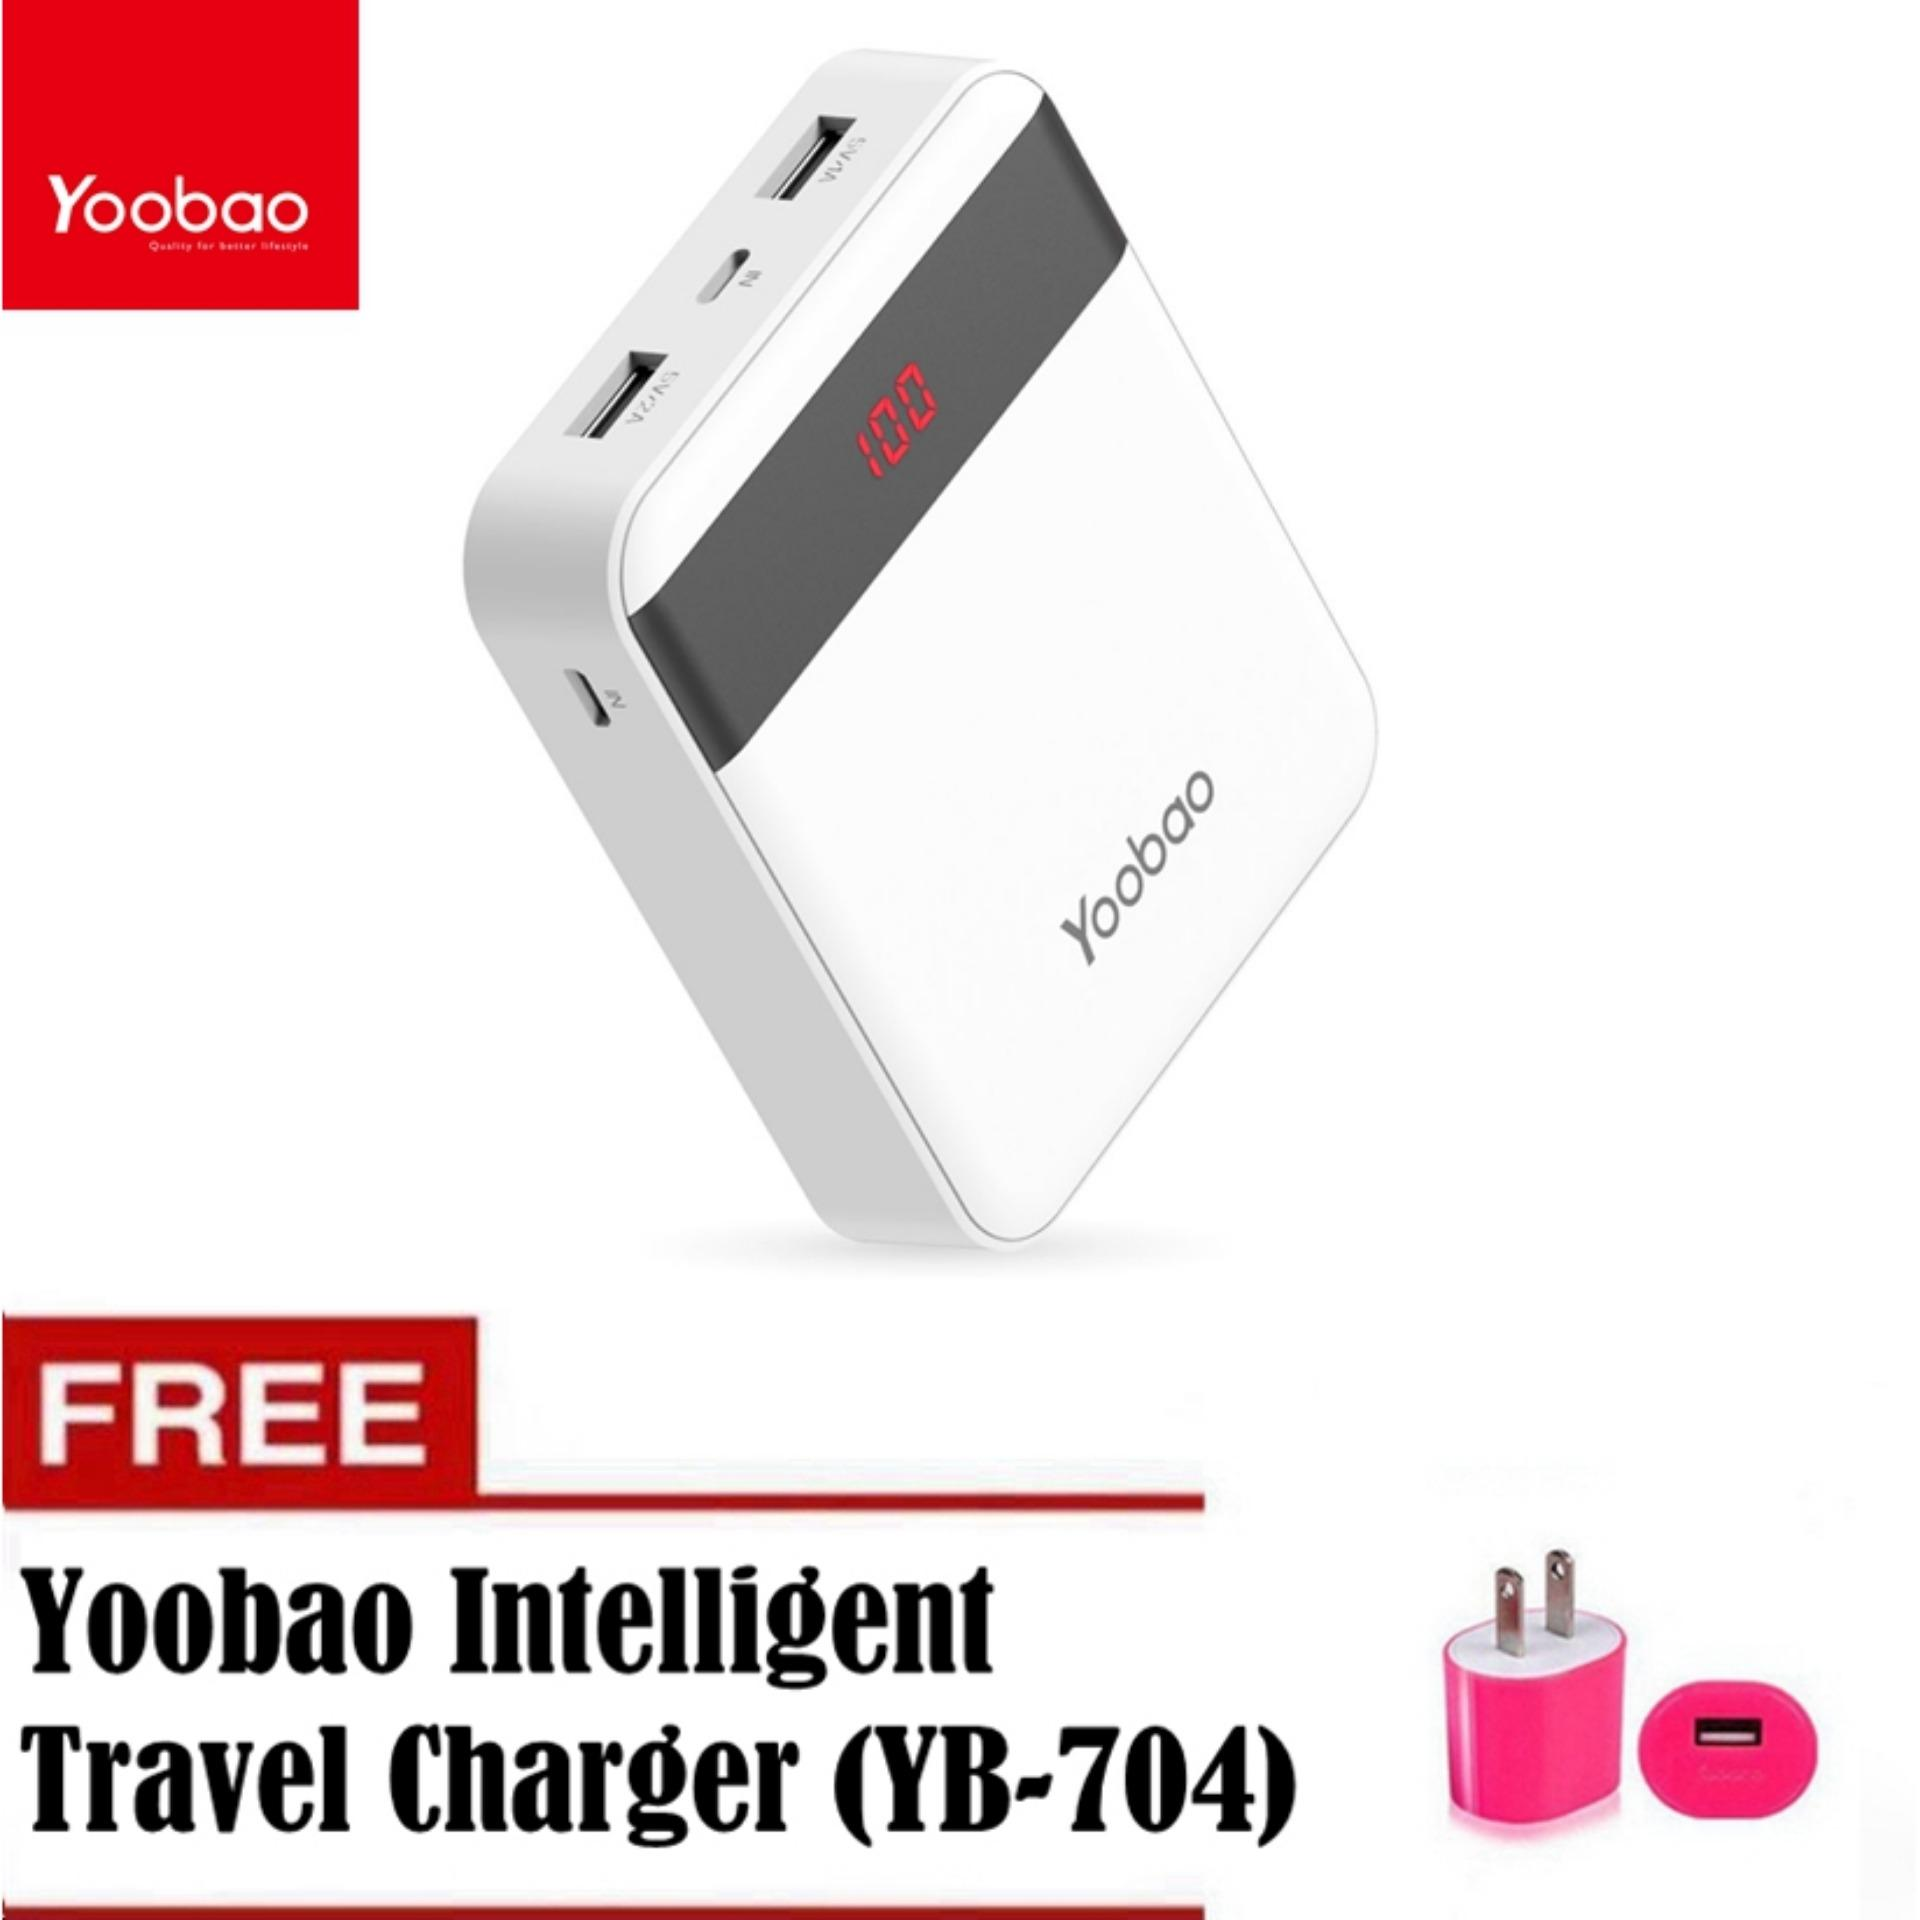 Yoobao M4Pro mAh LED Dual Output Power Bank White with Free YB 704